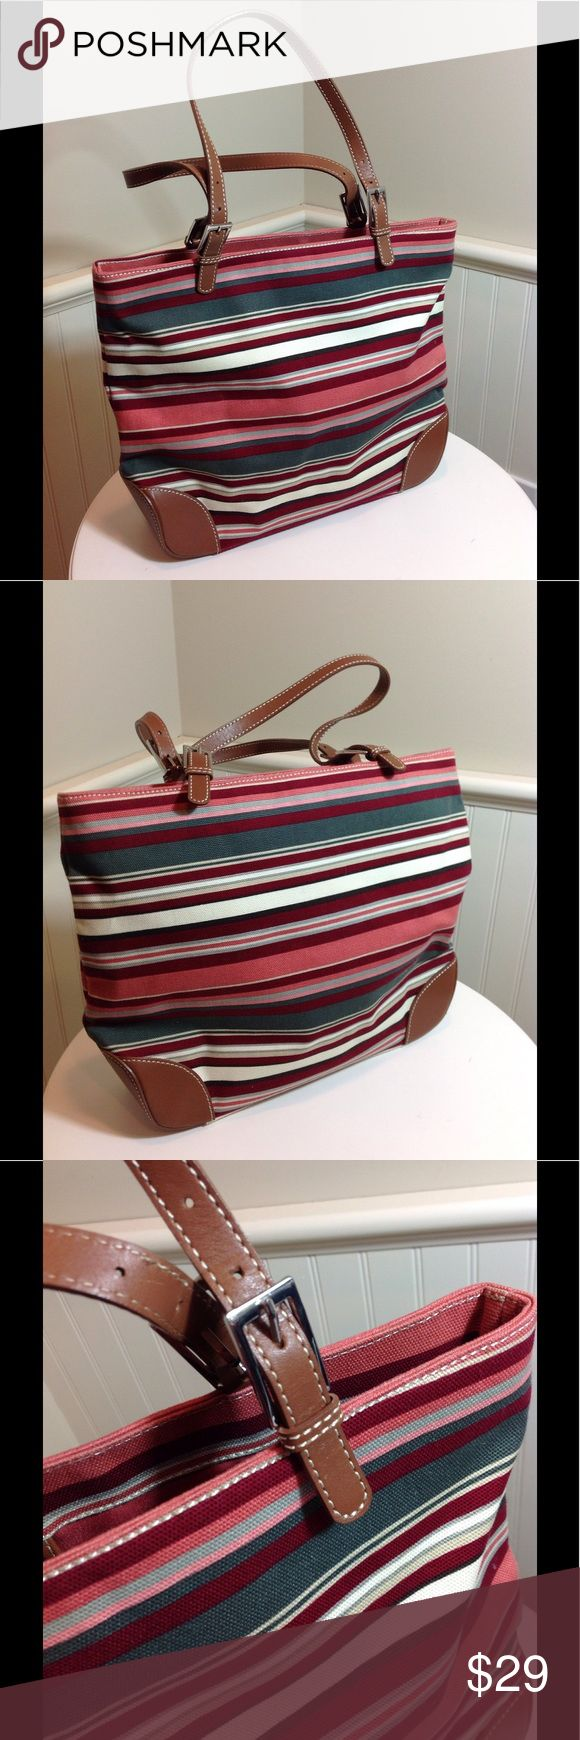 "Banana Republic Canvas Handbag Striped. Multicolored earth tones. Cotton canvas. Leather details; adjustable handles. Reinforced bottom corners. No sign of wear!!! Great condition!!! Handles have an Approx 8"" drop. 14"" wide X 11"" high x3"" deep. Banana Republic Bags Totes"